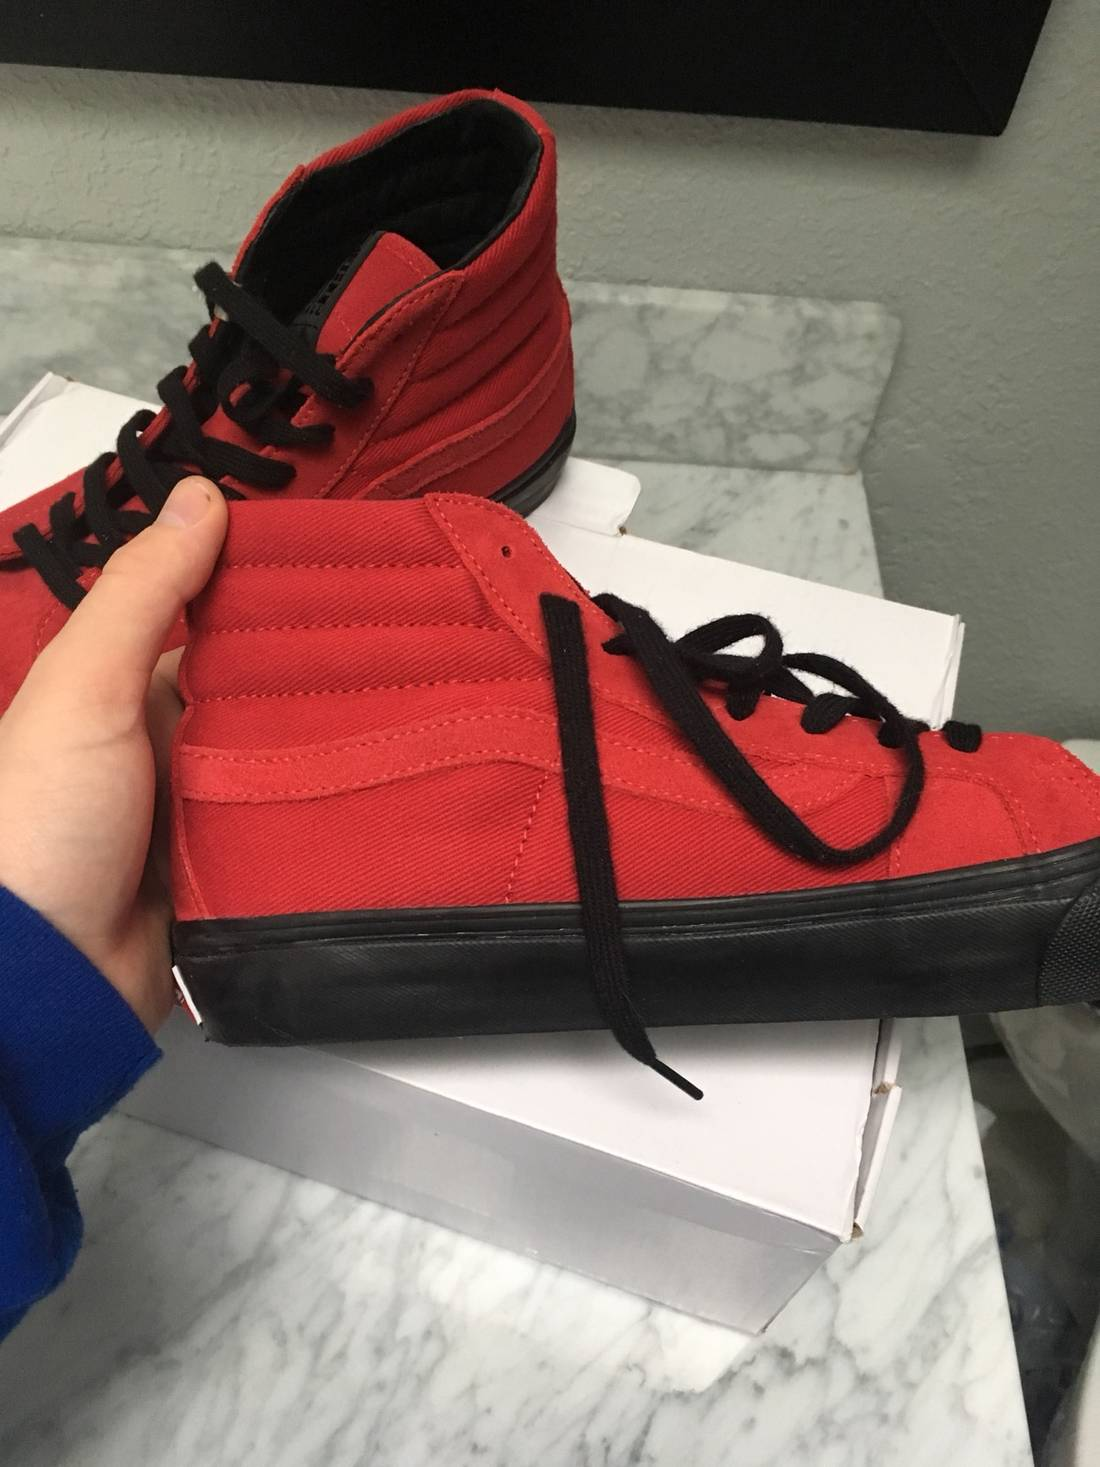 Red Alyx Edition OG Style 138 LX High-Top Sneakers Vans